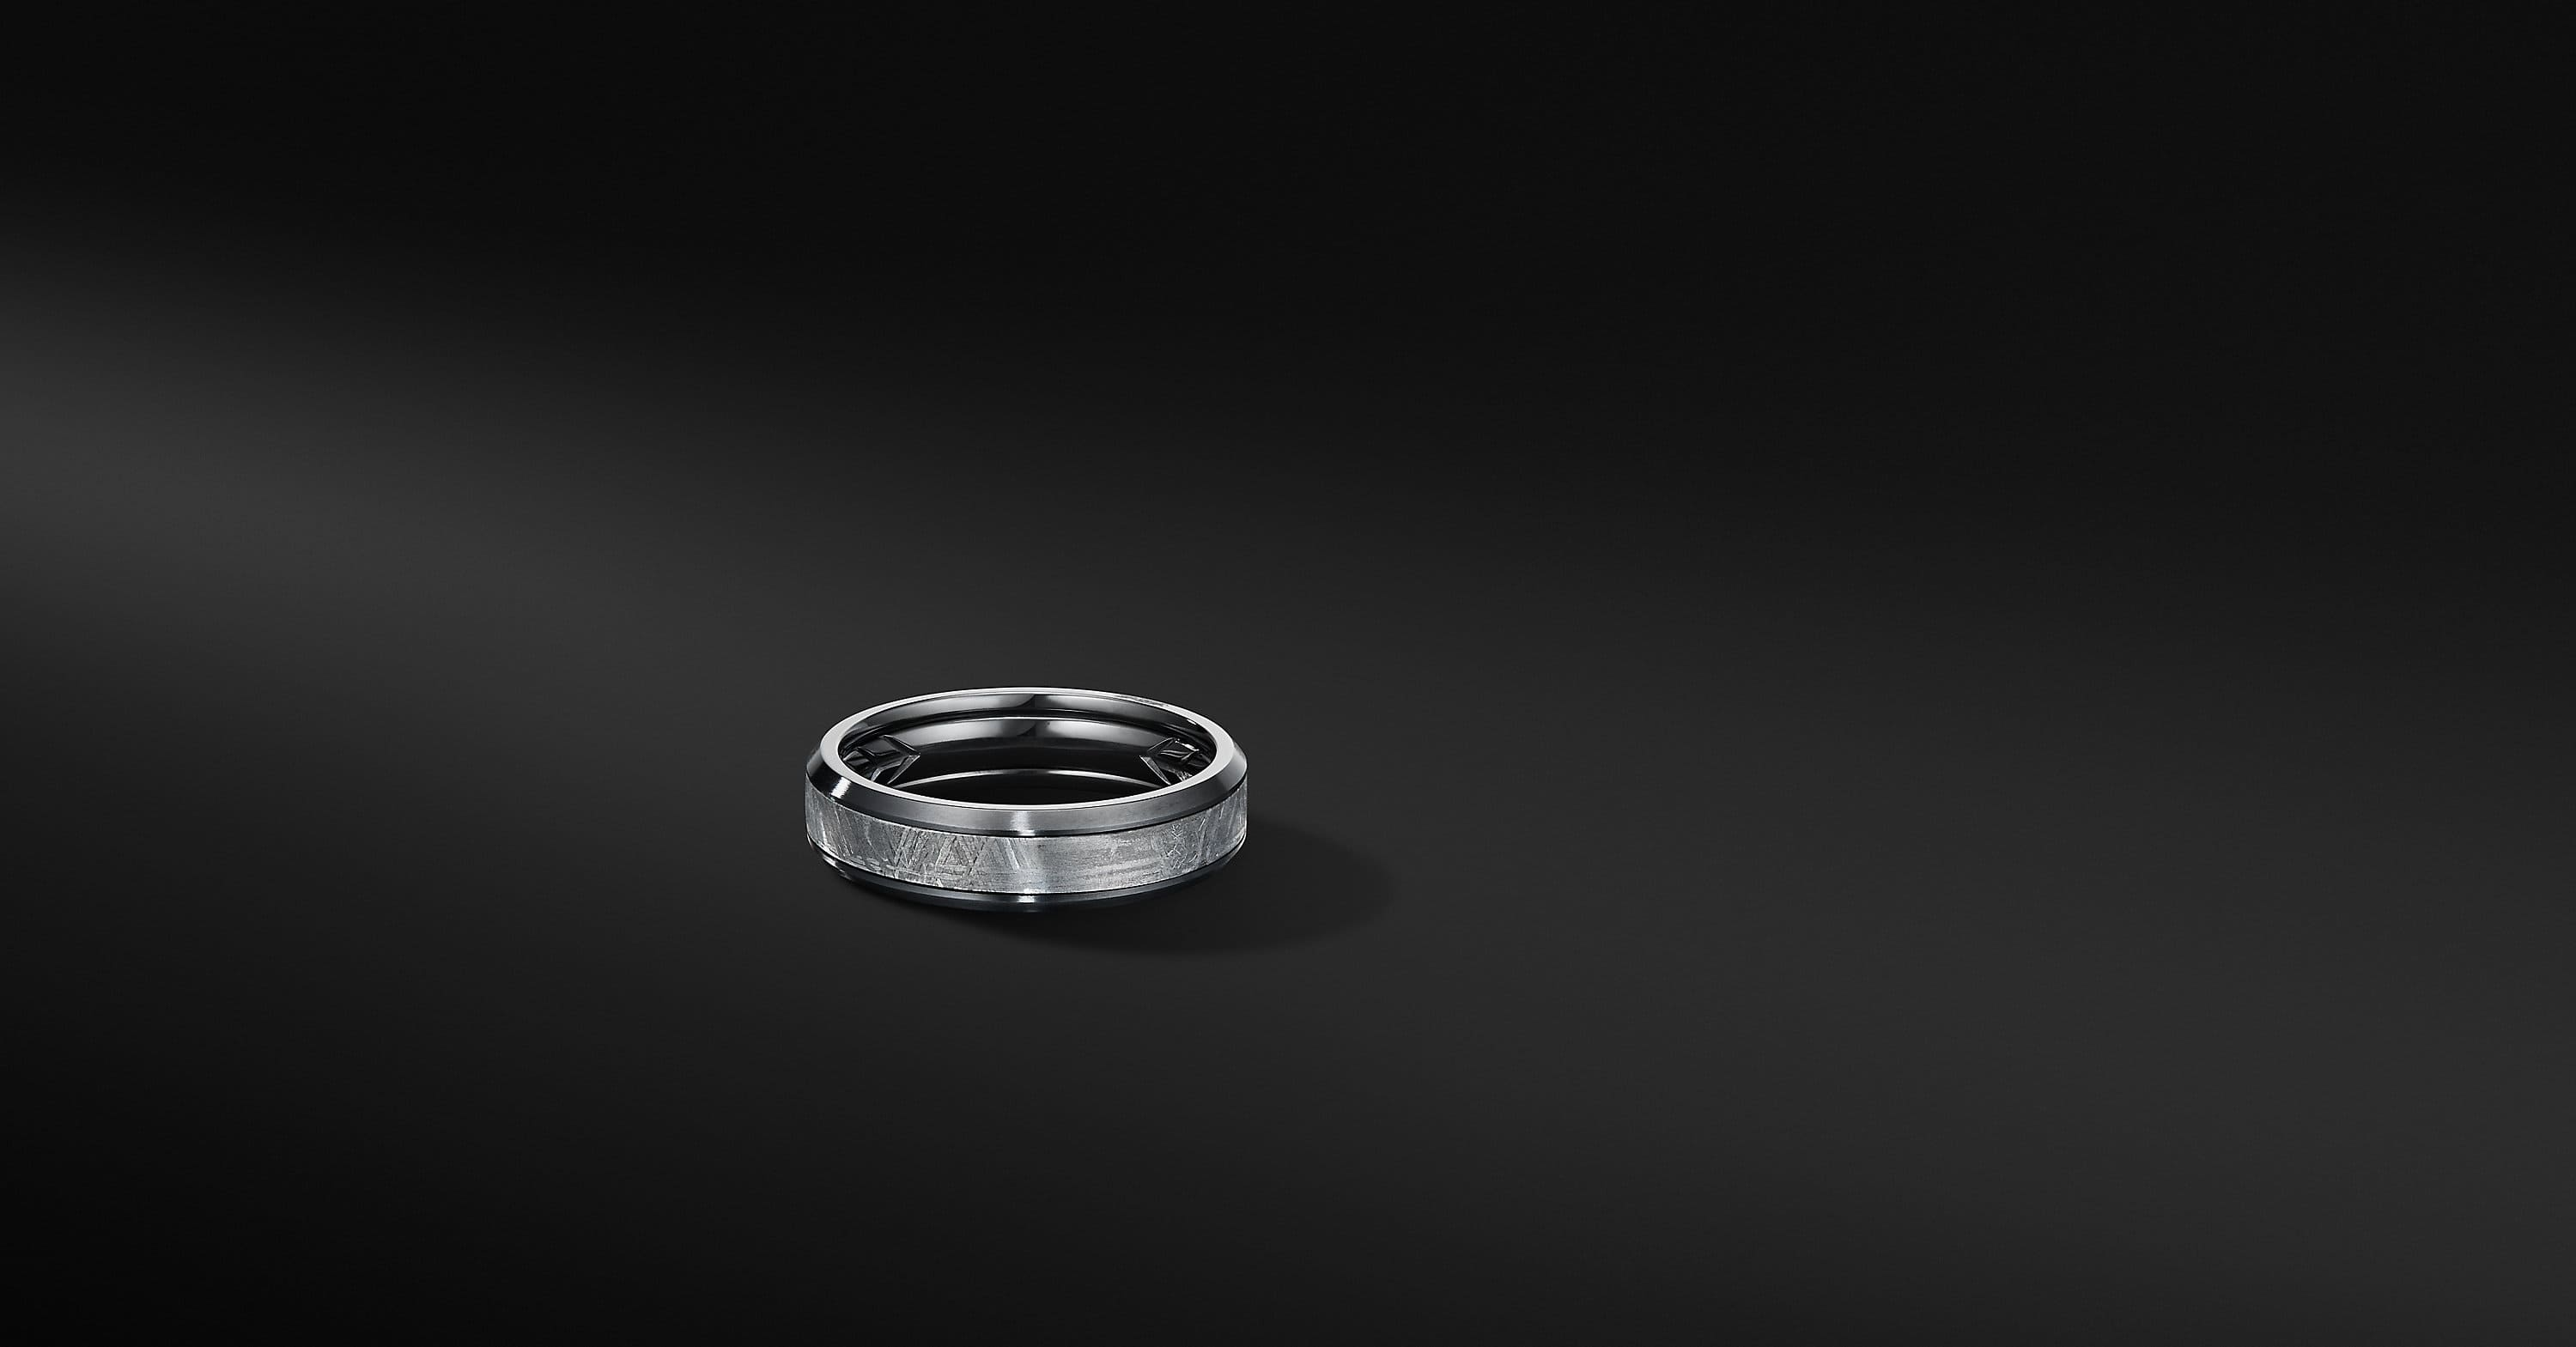 Beveled Band Ring in Black Titanium, 6mm